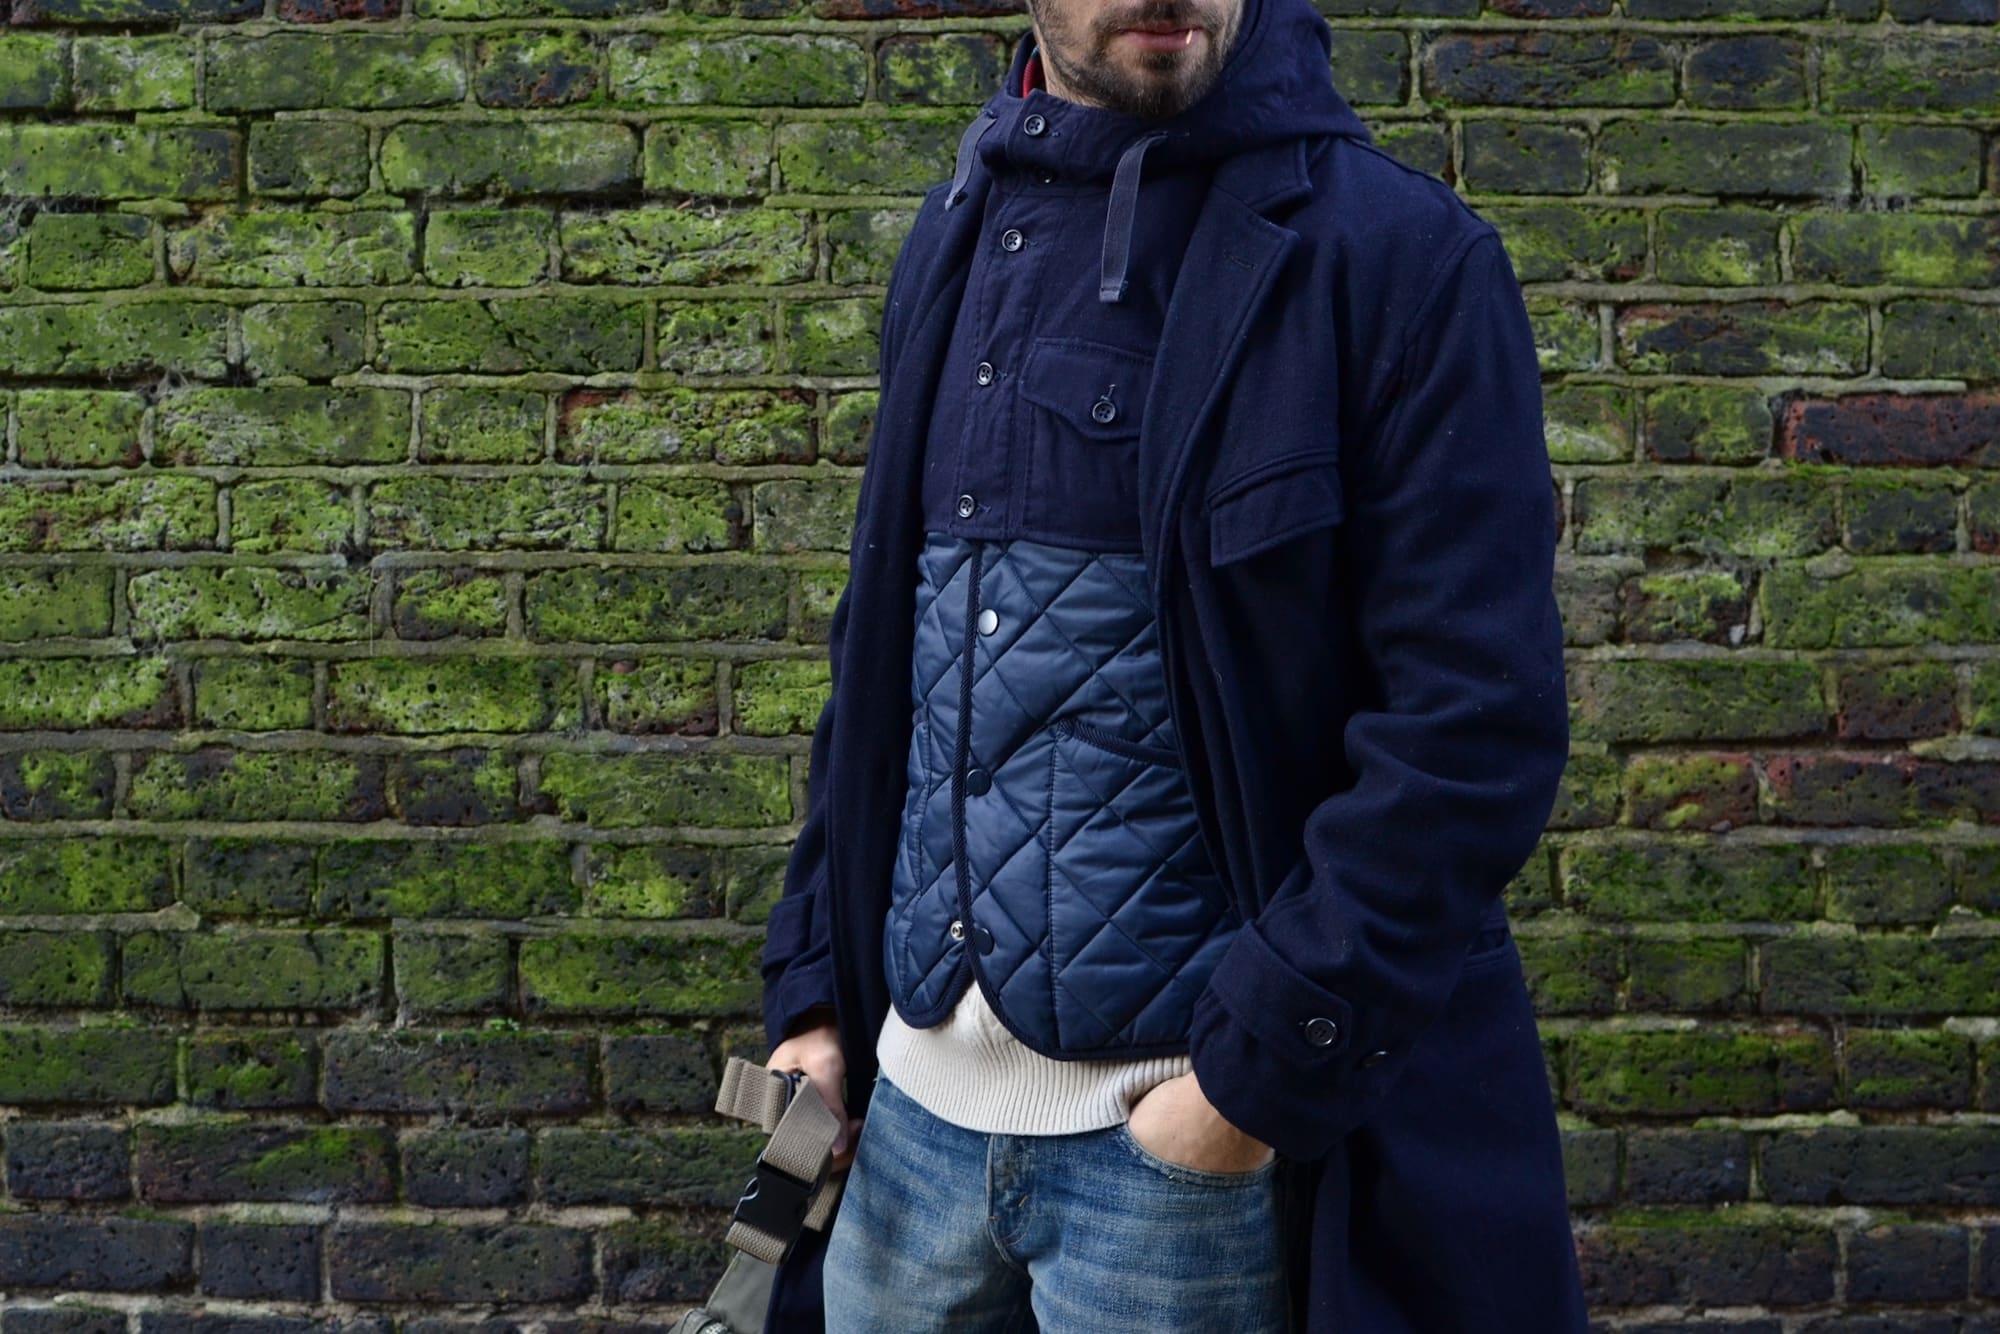 idée de tenue avec bon plan trouvé friperie à londre et une tenue street heritage workwear avec engineered garments chest navy wool coat shoulder hoood uniform serfe and fanny pack ripstop olive et une gilet vest quilted benetton façon vintage barbour, un denim tapered and des clarks wallabees hike boots